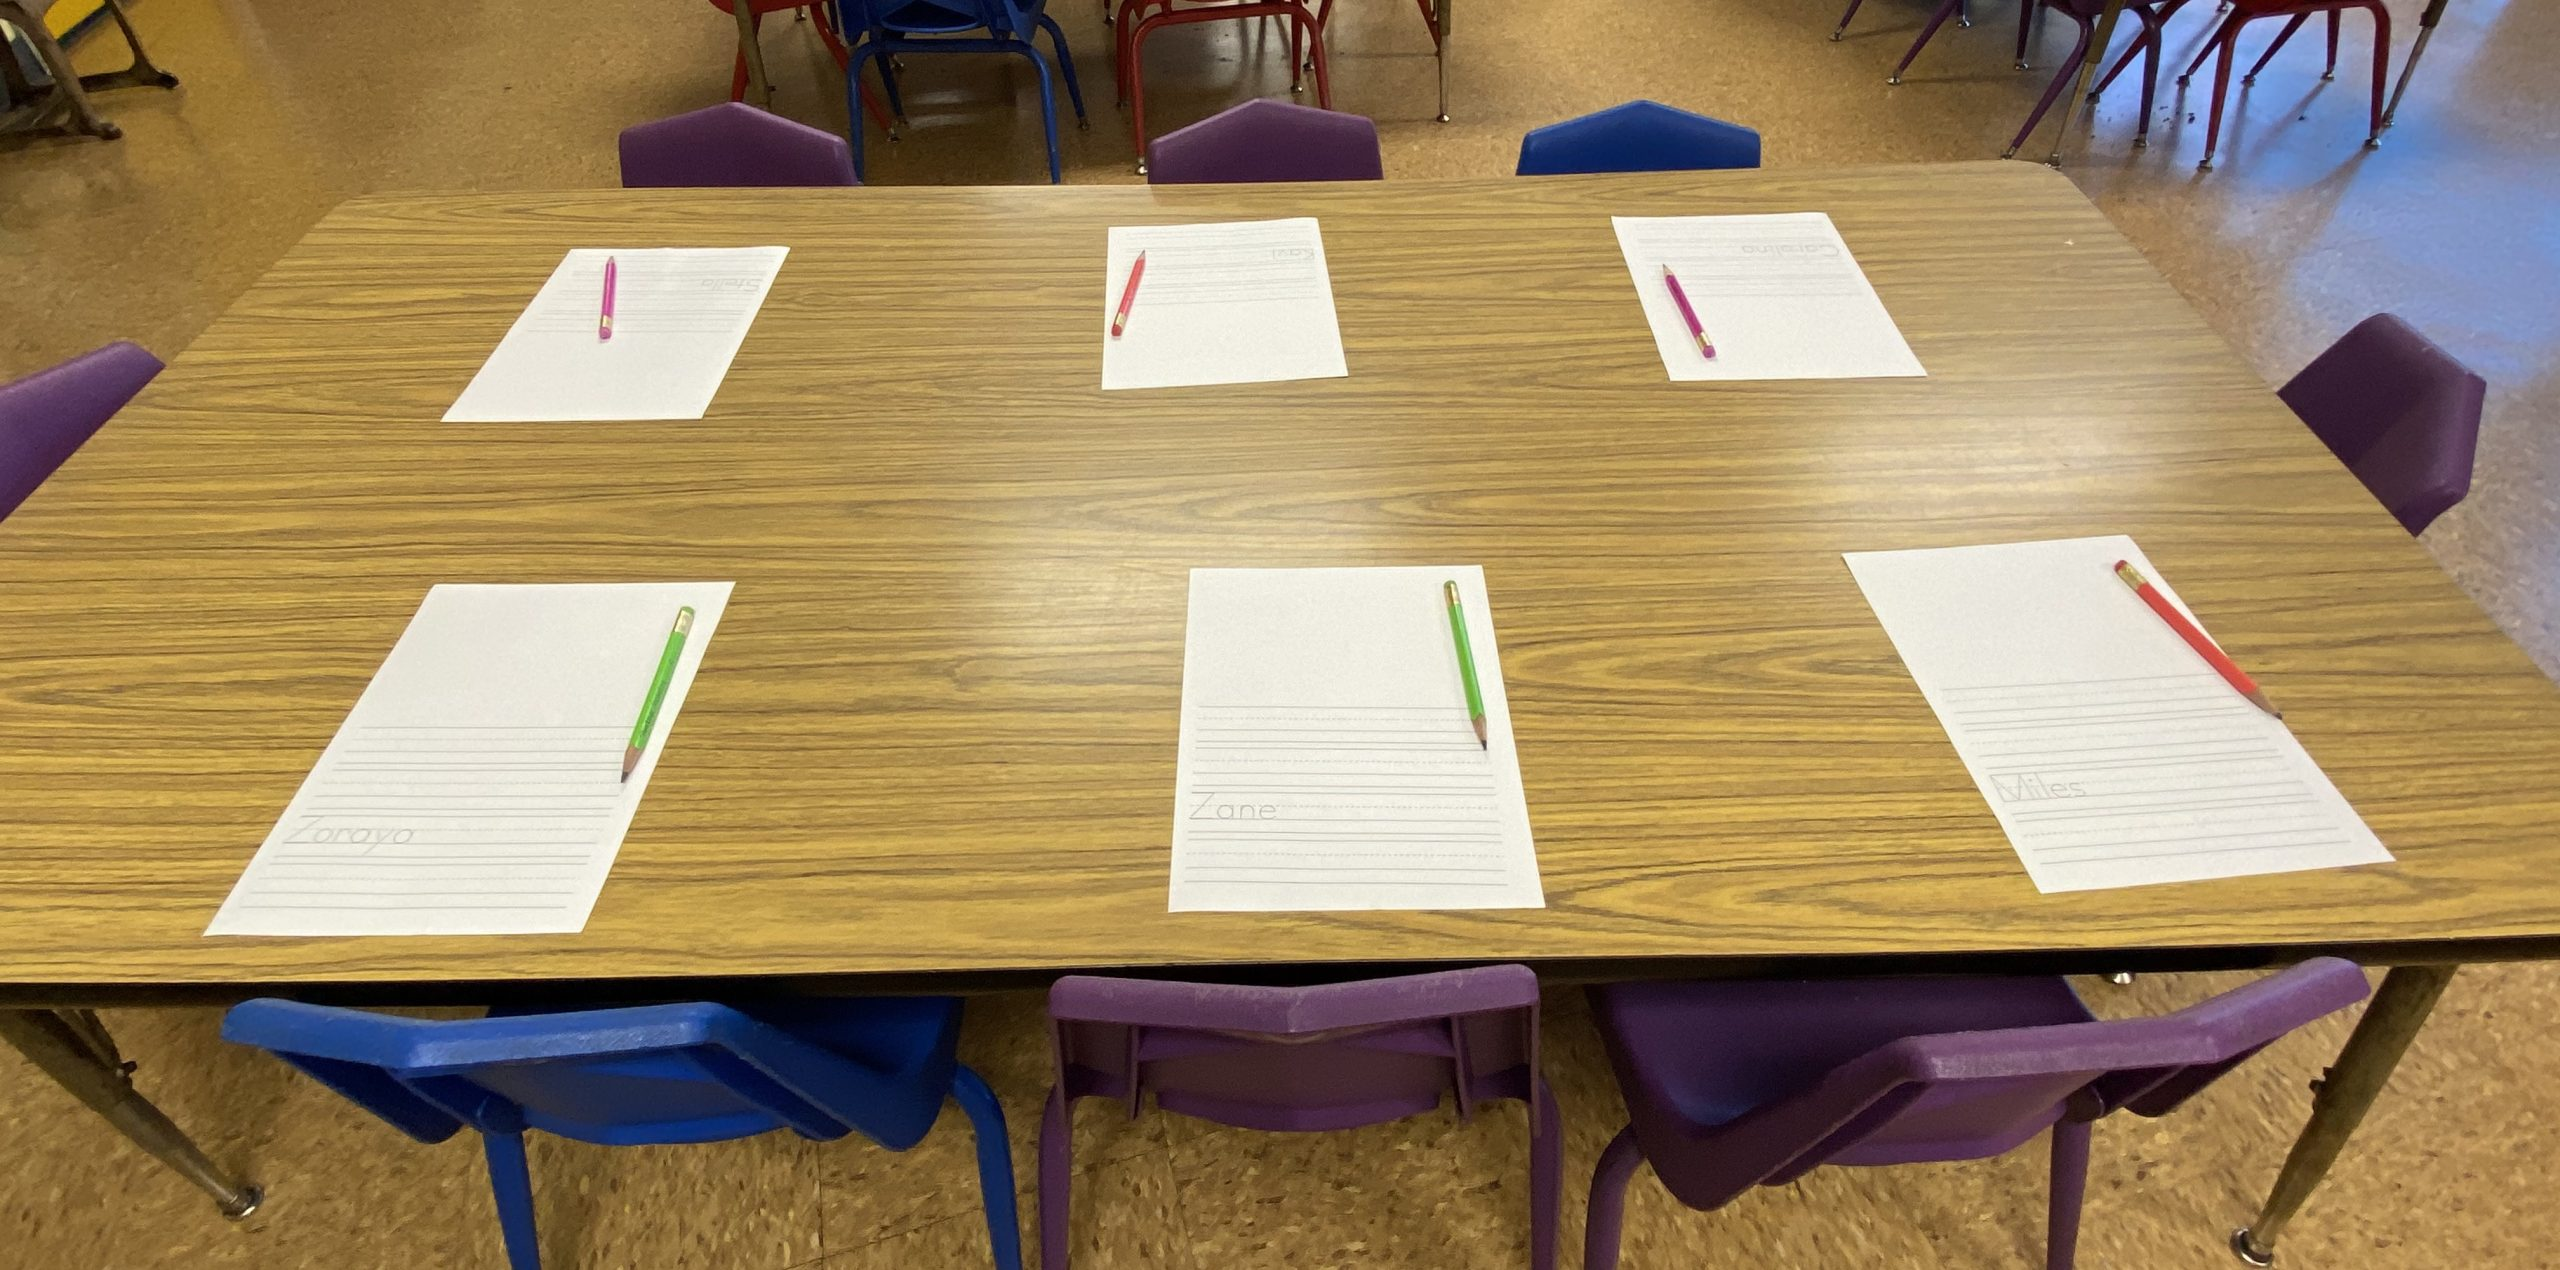 Writing and tracing in preschool